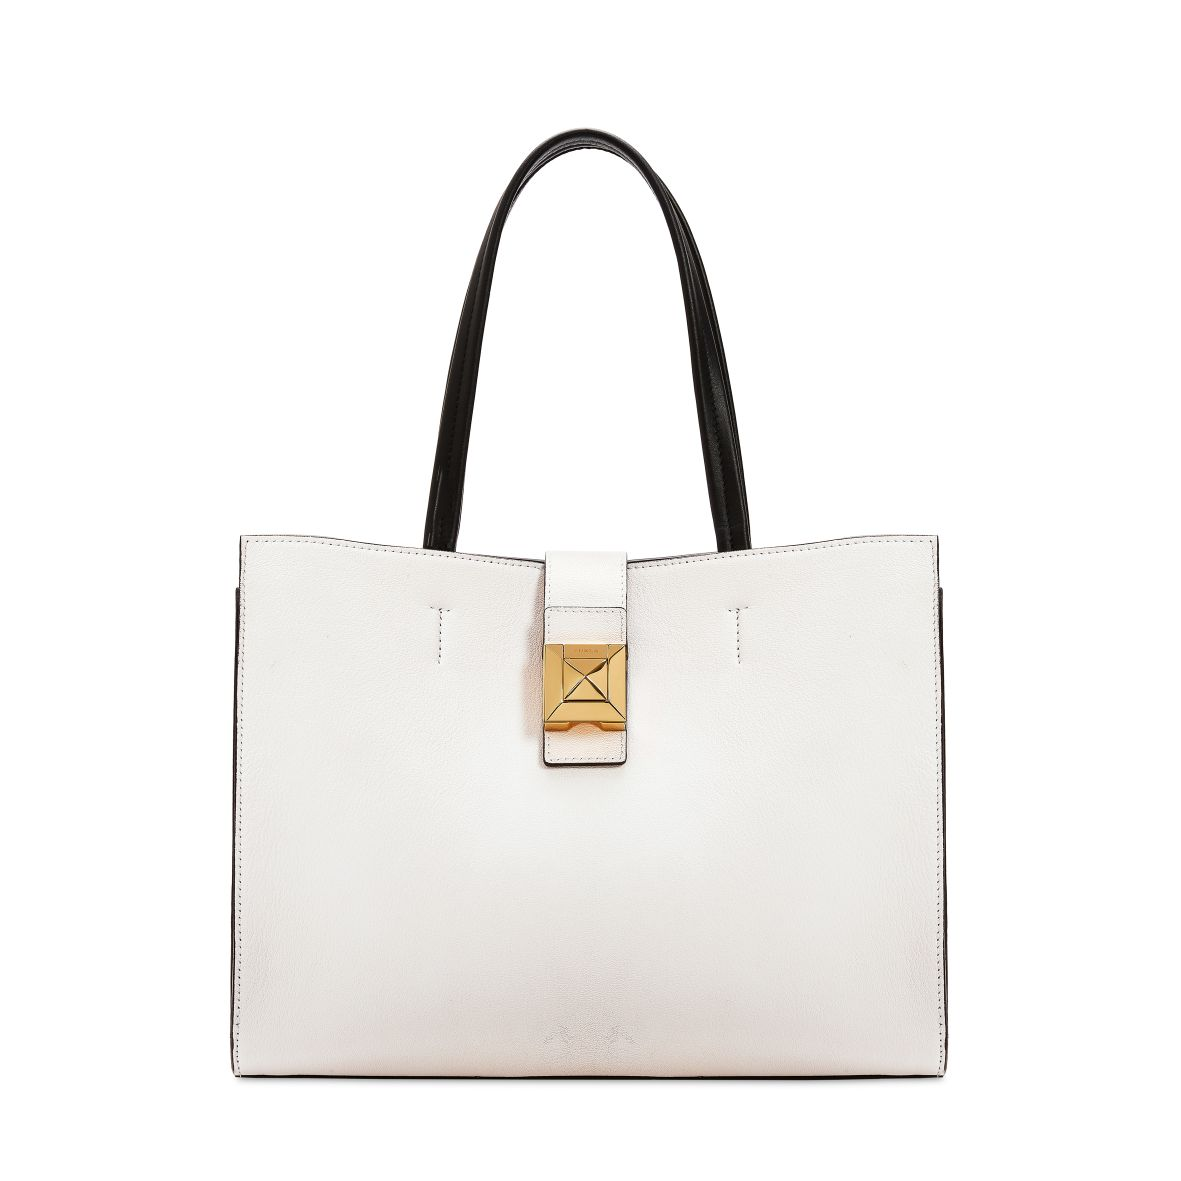 29439d33e0edf Furla Diva, light and roomy, is perfect for any occasion. The shoulder bag  features a sophisticated, elegant, and modern colour palette: a combination  of ...